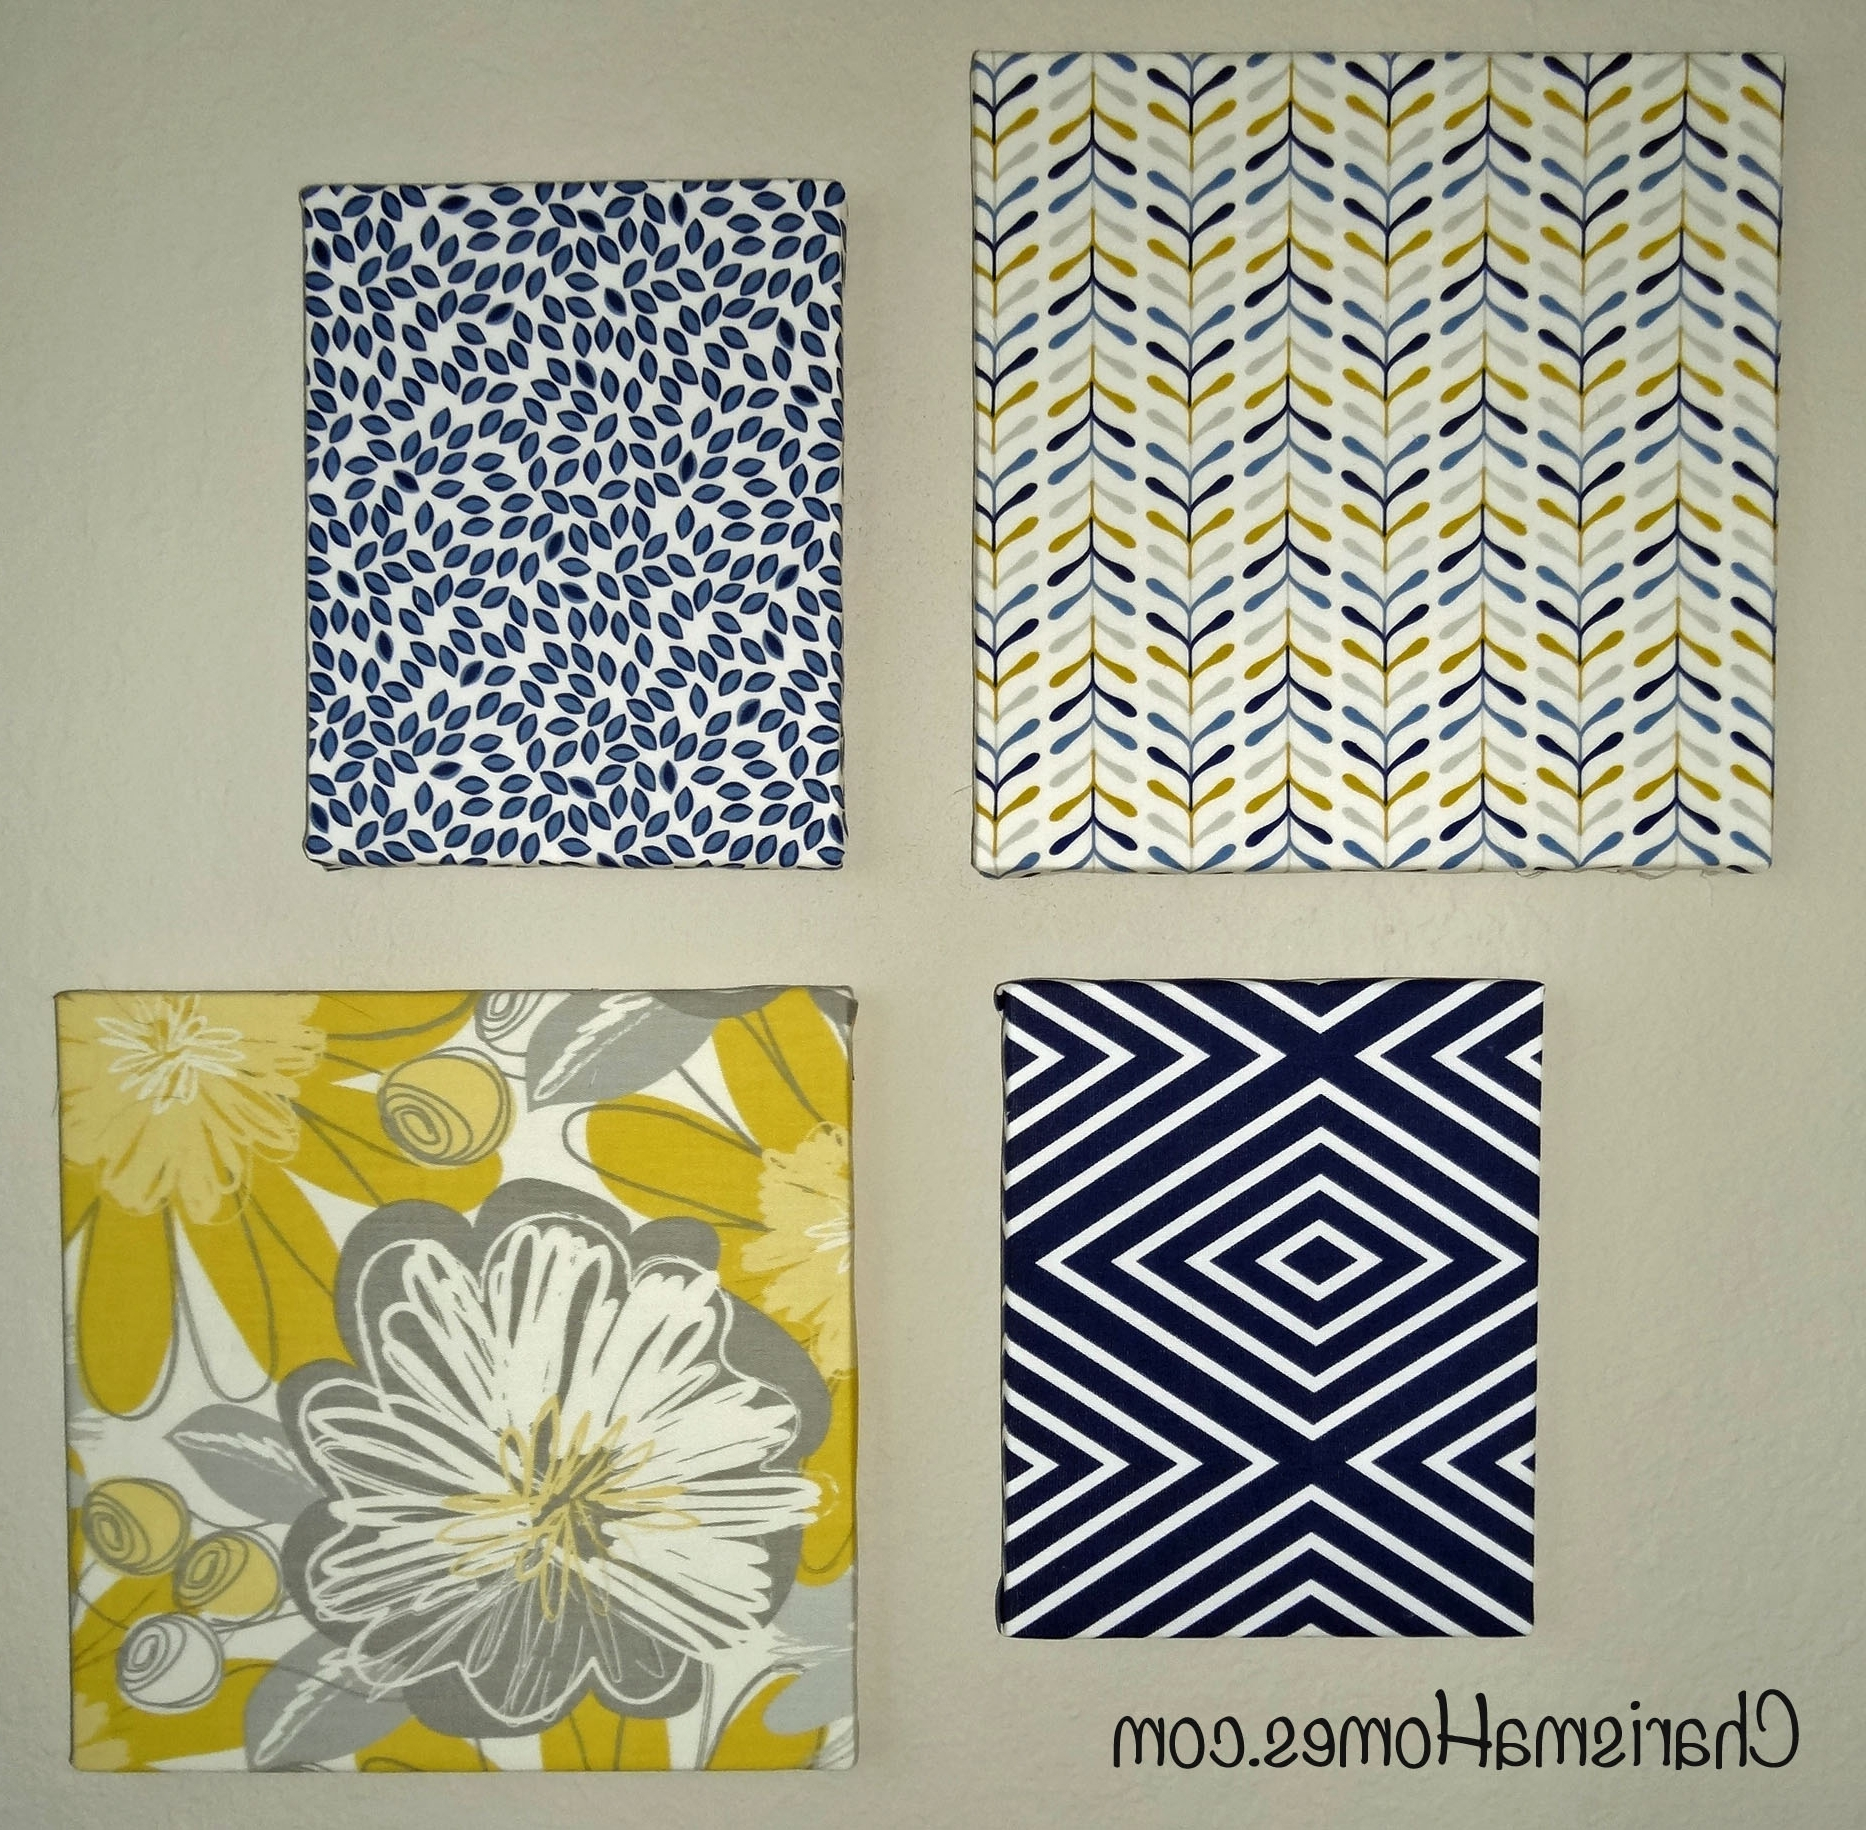 Fabric Square Wall Art Pertaining To Most Recently Released Wall Art Designs: Terrific Fabric Covered Canvas Wall Art Simple (View 6 of 15)